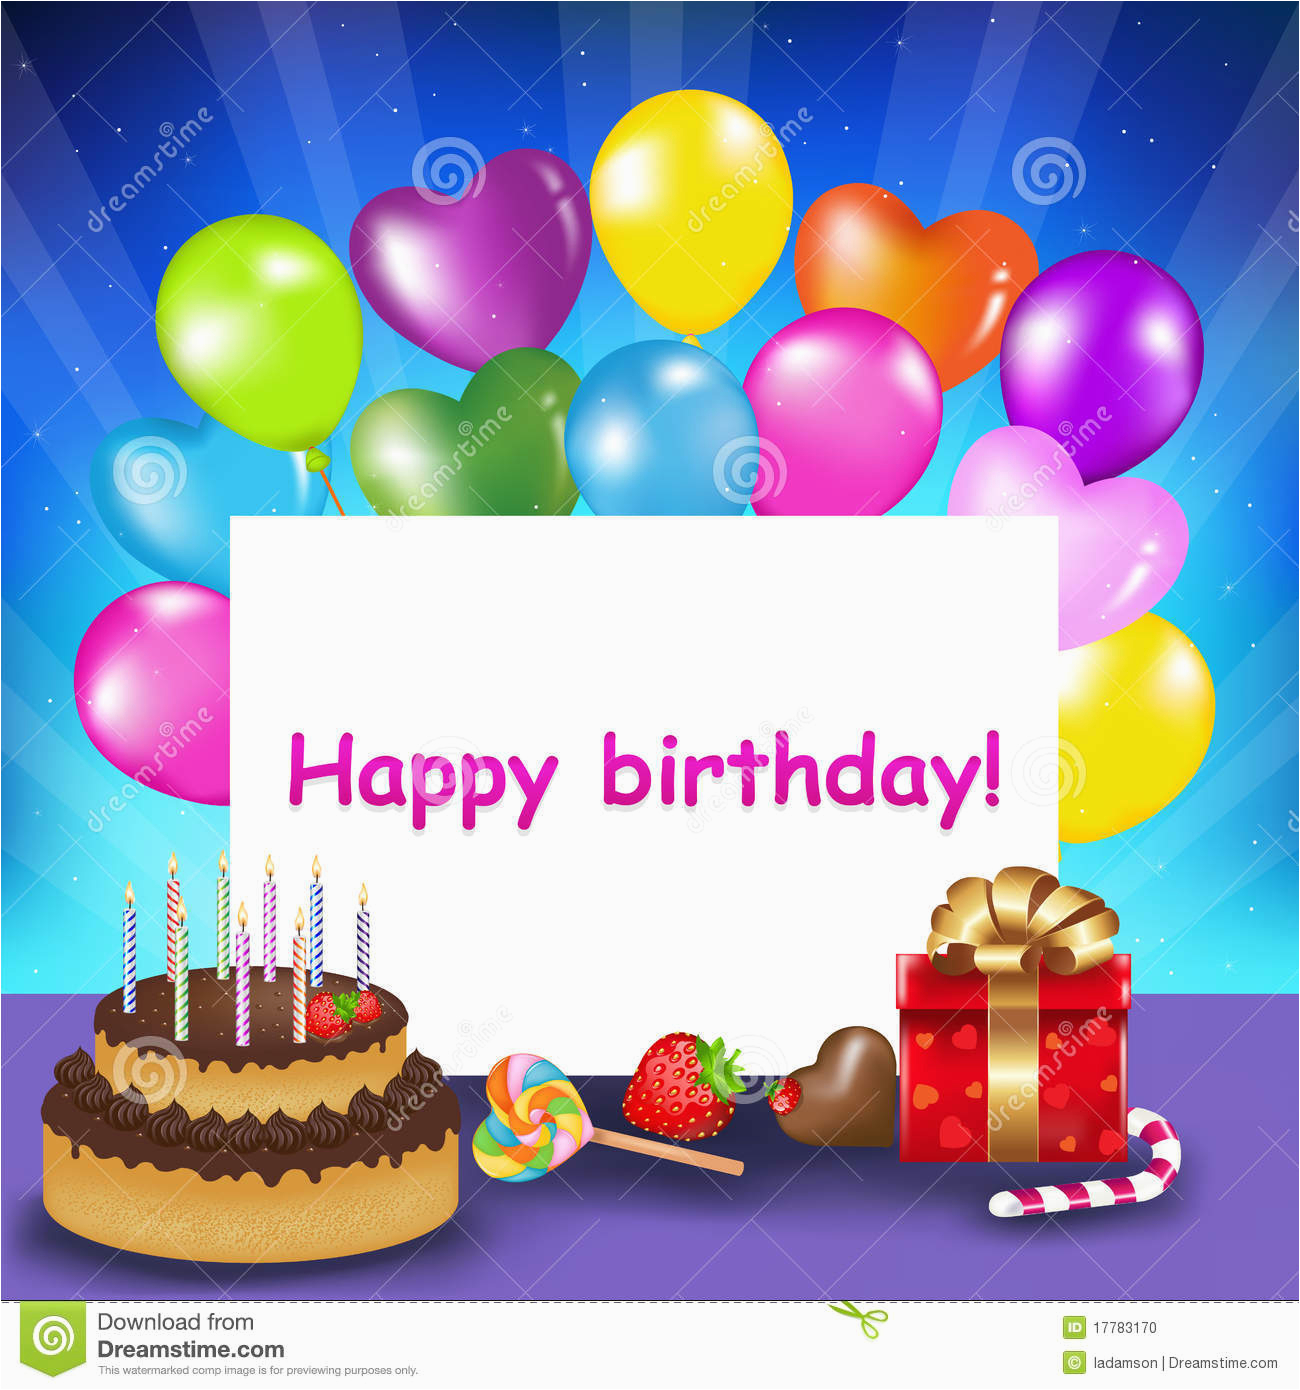 Happy Birthday Cards Online Free To Make Inside Ucwords Card